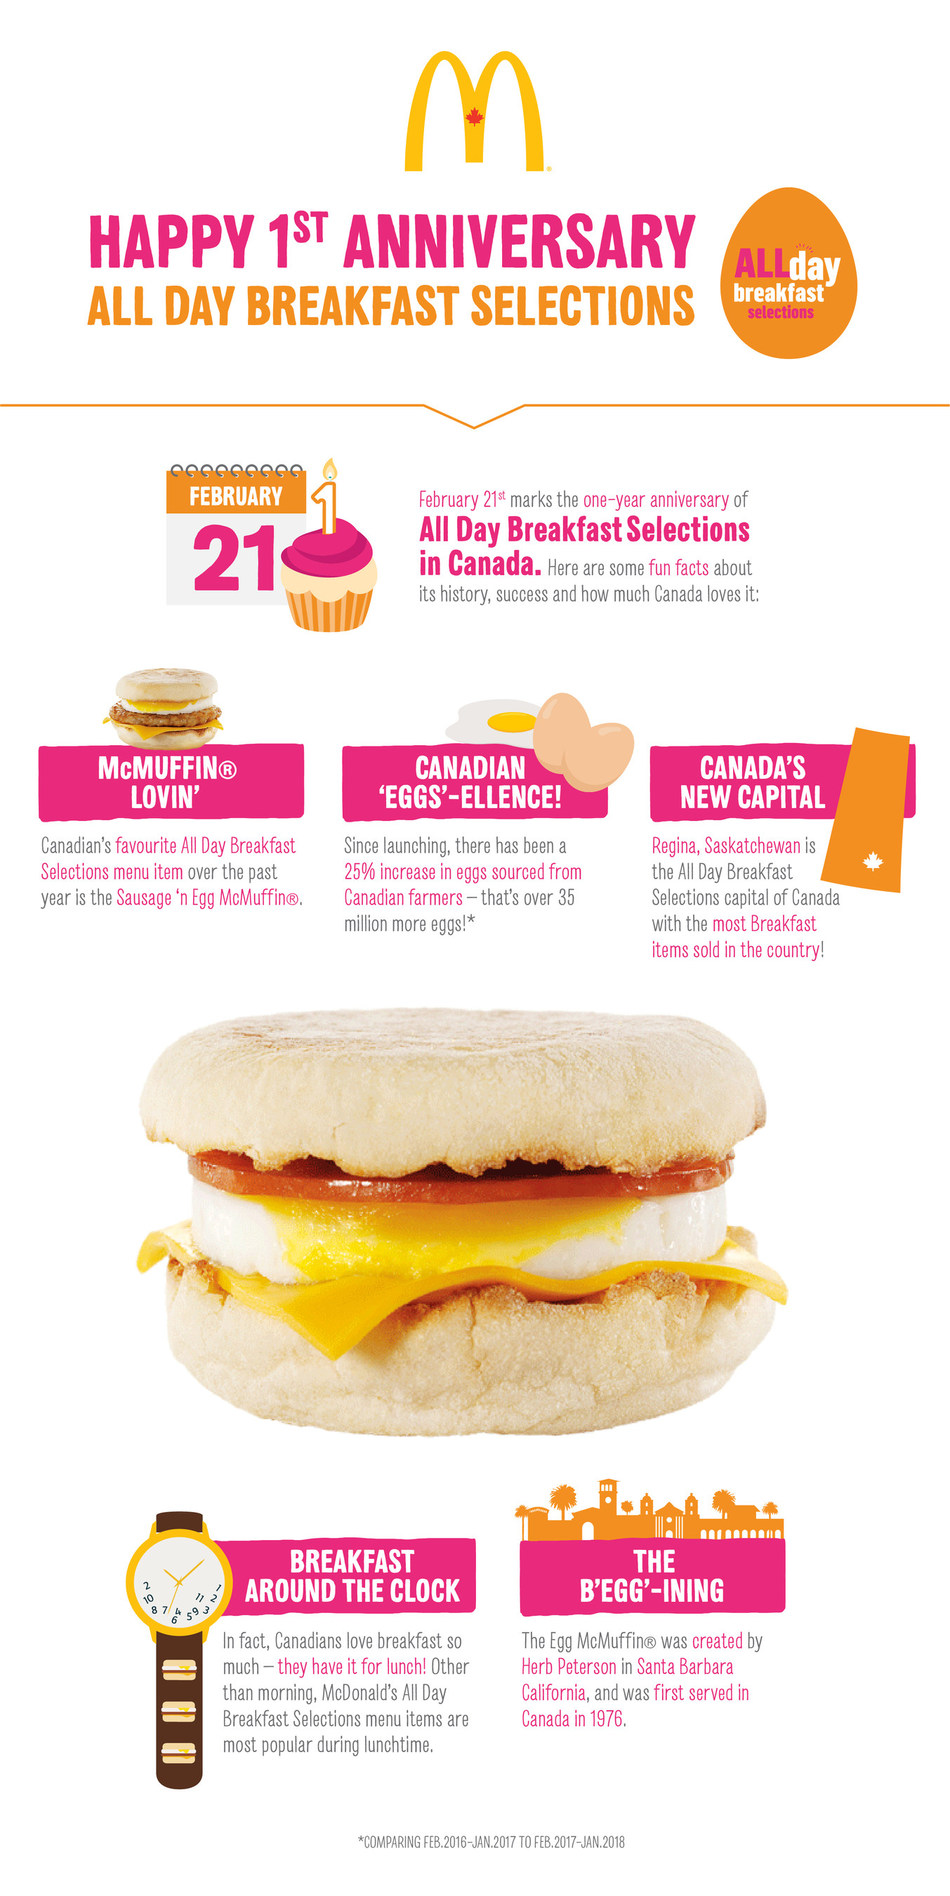 February 21st at 11:01 a.m. marks McDonald's Canada one year anniversary of All Day Breakfast in Canada. Here are some fun facts about its success. (CNW Group/McDonald's Canada)